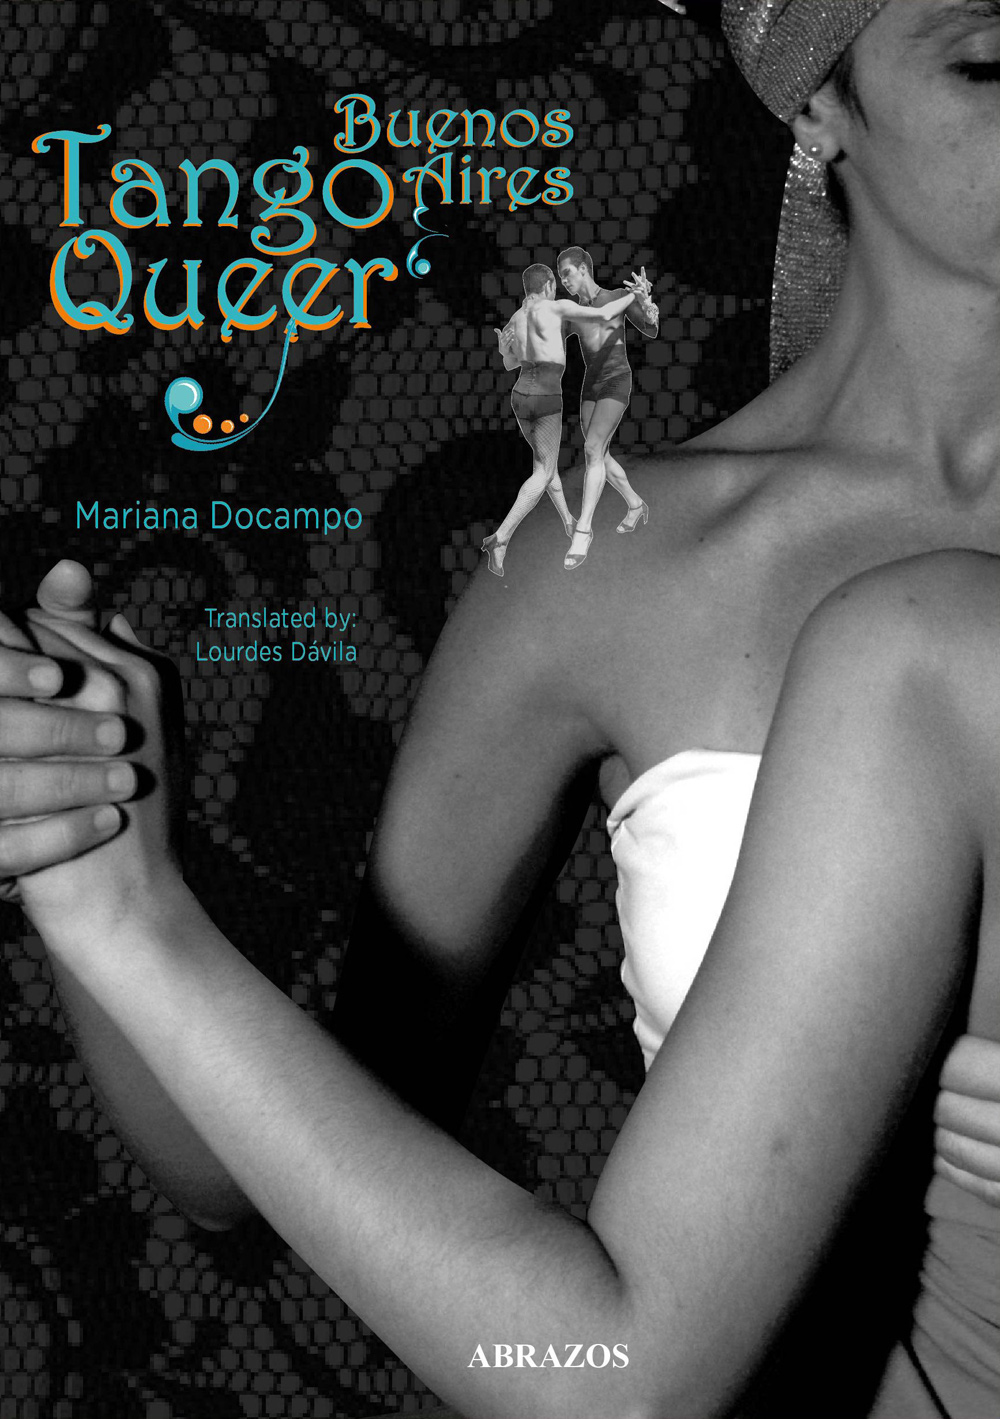 Pre-order 'Tango Queer Buenos Aires' by Mariana Docampo